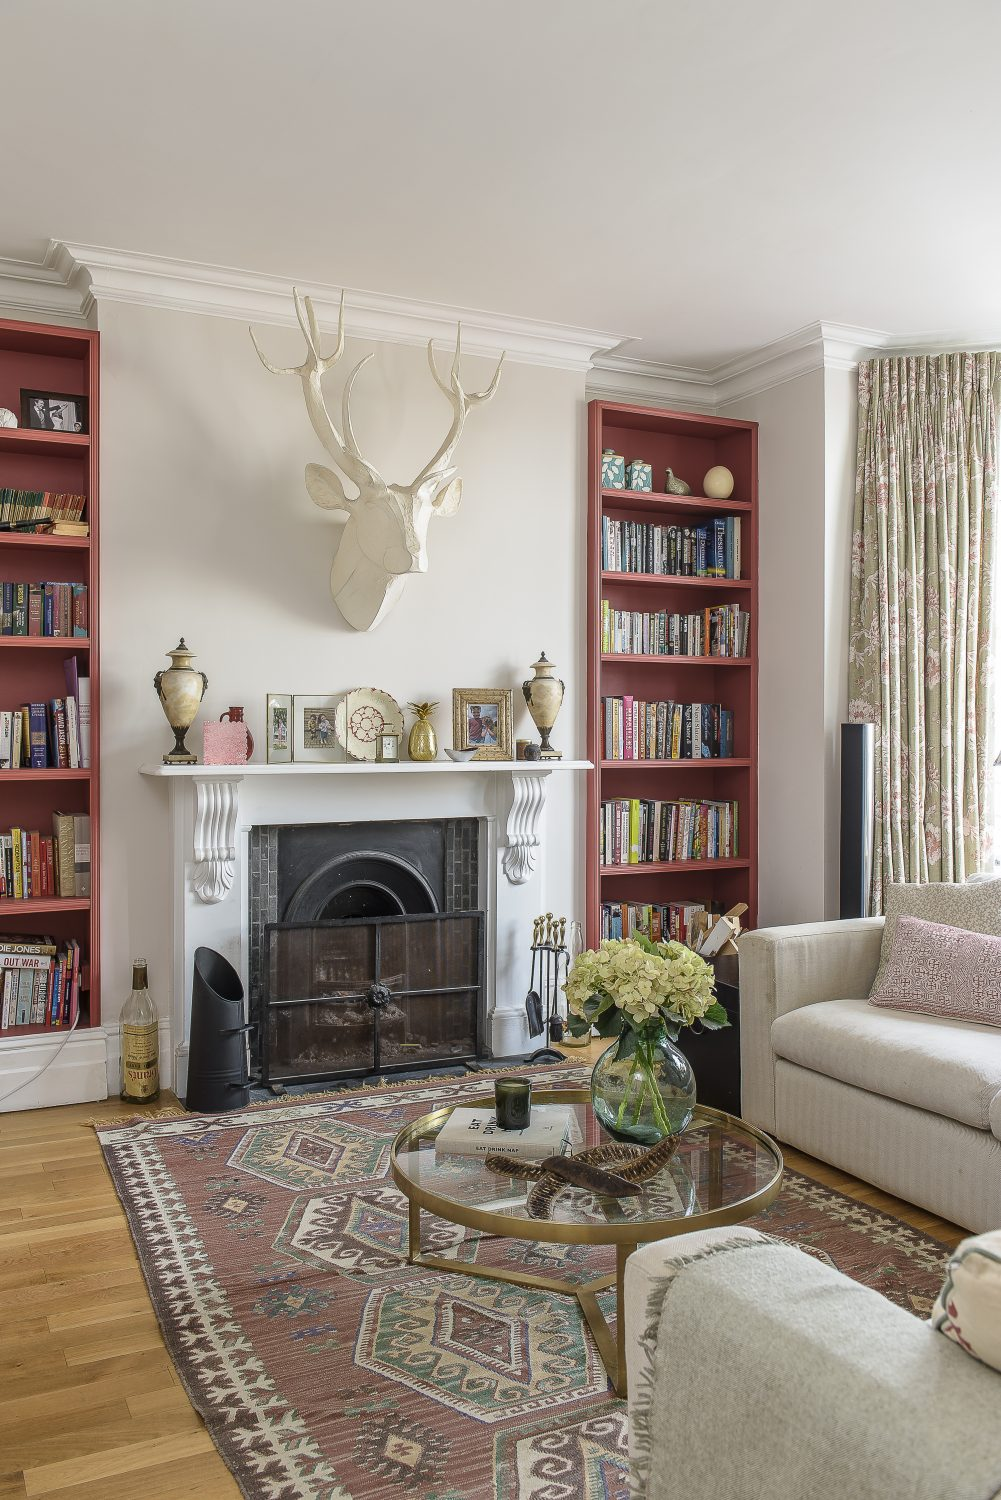 The high-ceilinged sitting room features a neutral colourway with bookshelves on either side of the original fireplace painted in Farrow & Ball Blazer